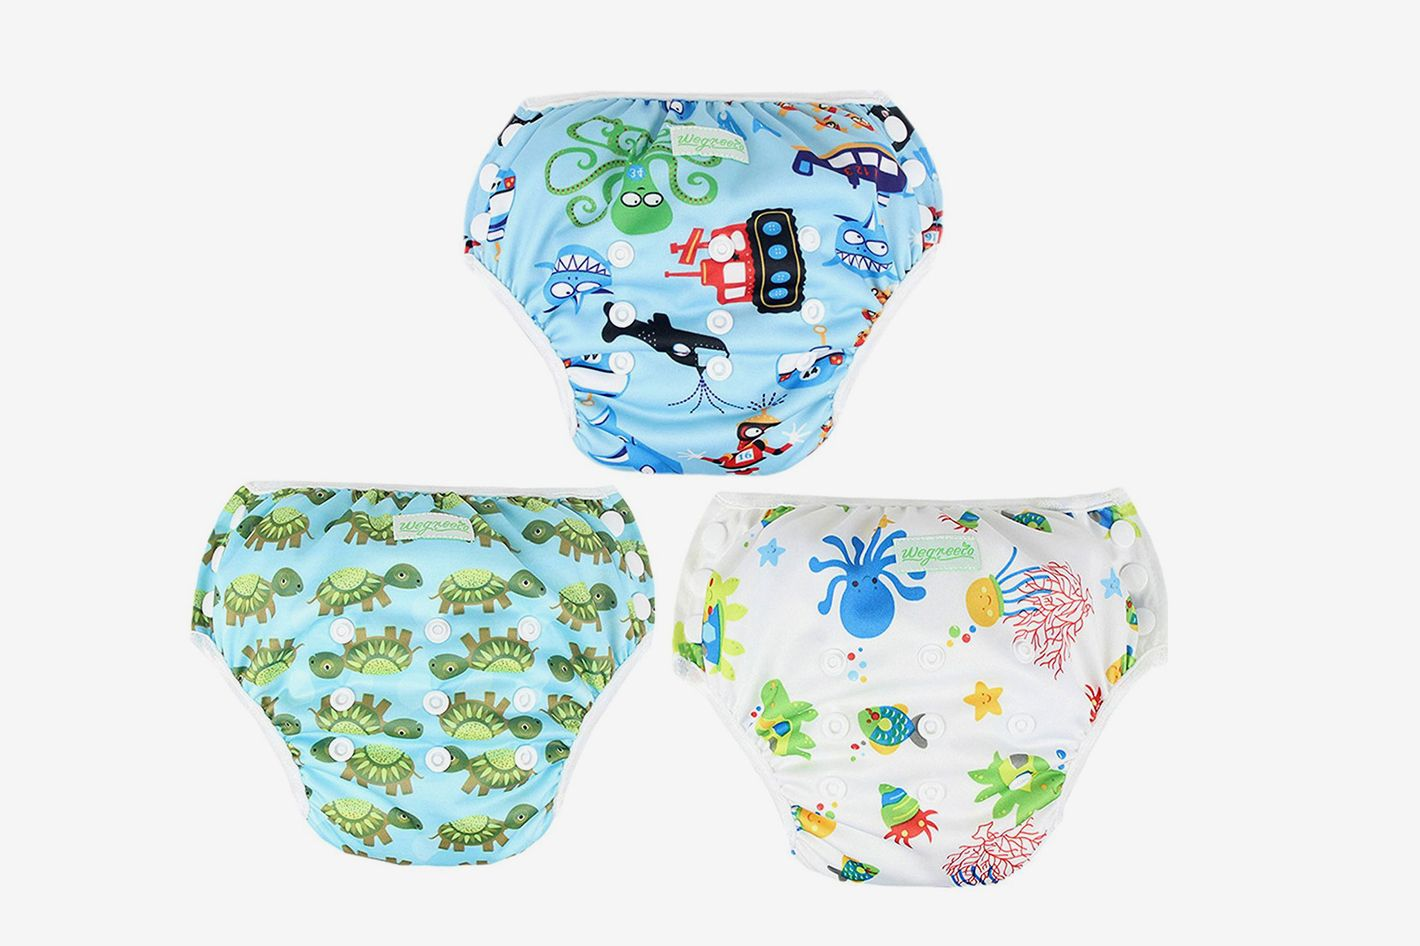 Wegreeco Baby & Toddler Snap One Size Reusable Baby Swim Diaper 3-Pack